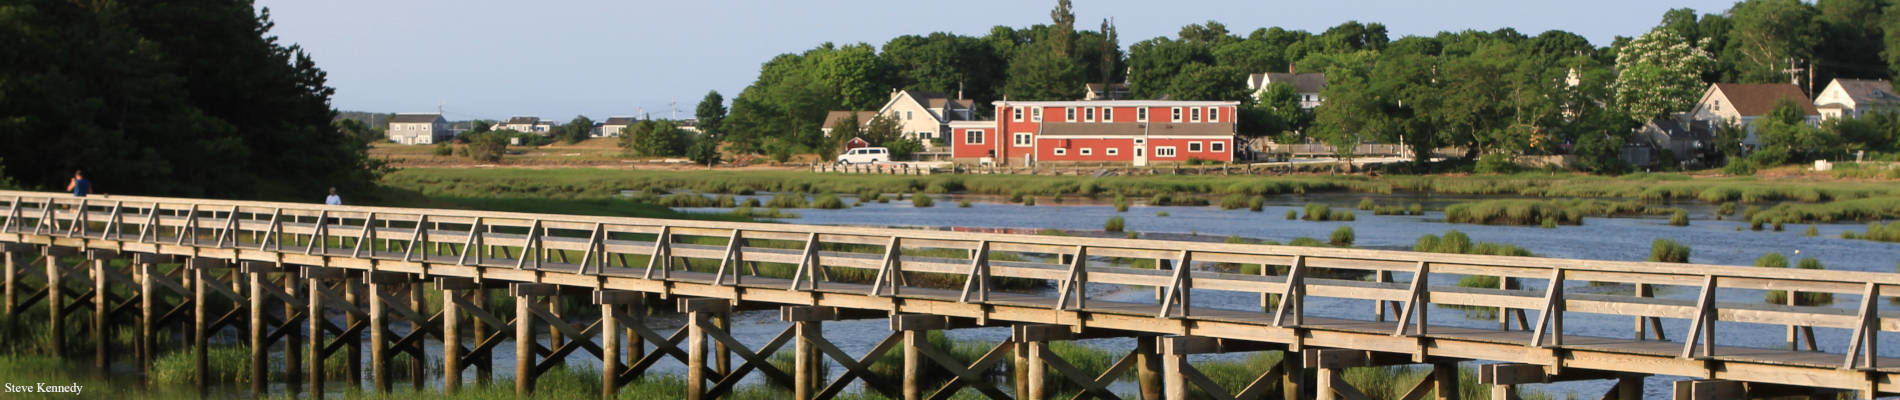 Uncle Tim's Bridge Wellfleet